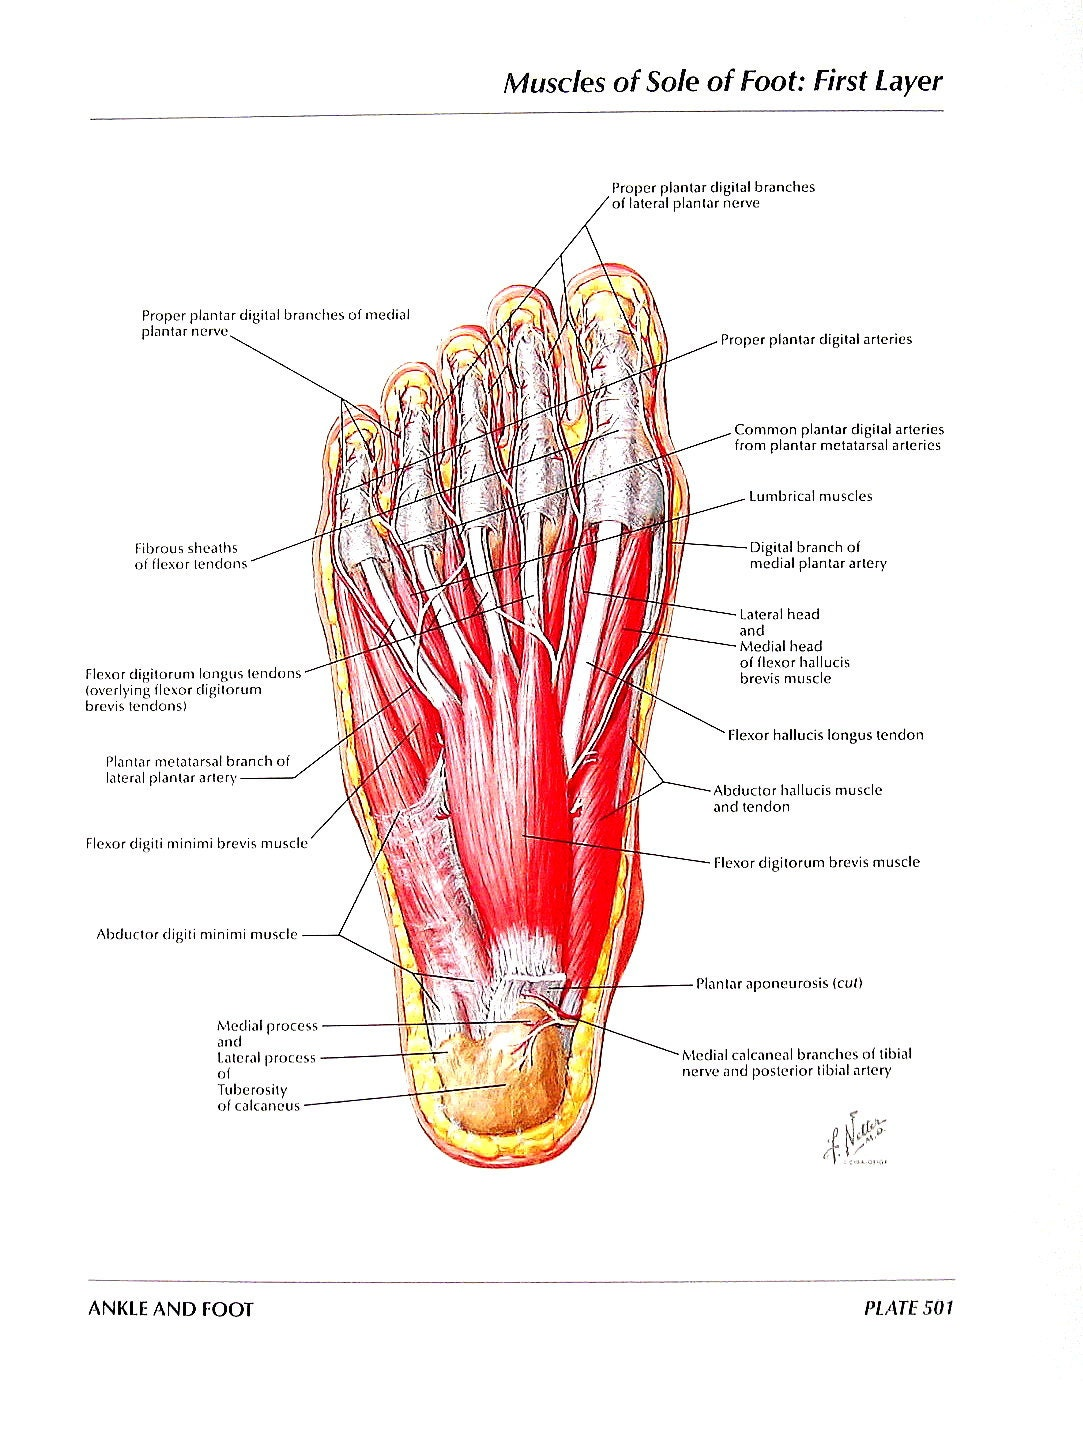 Anatomy of foot muscles